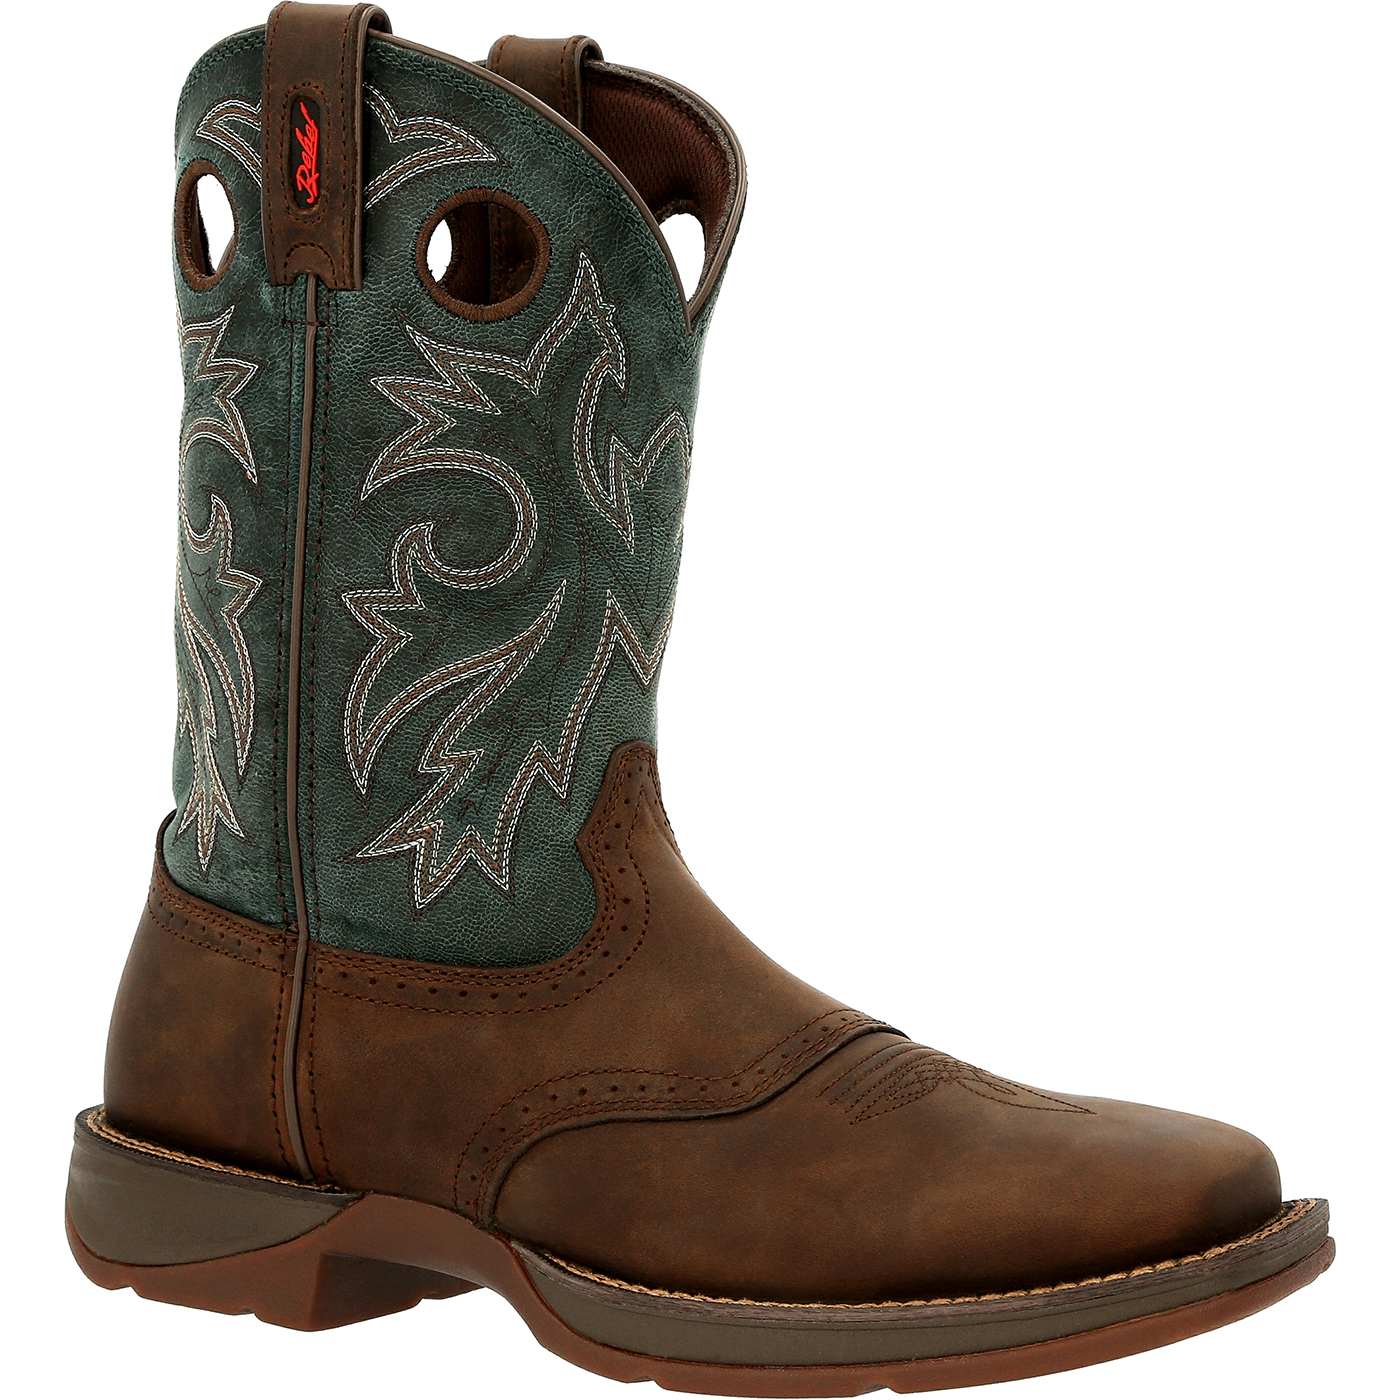 Durango Mens Coffee Cactus Boots Leather Rebel 12 Inch Pull On